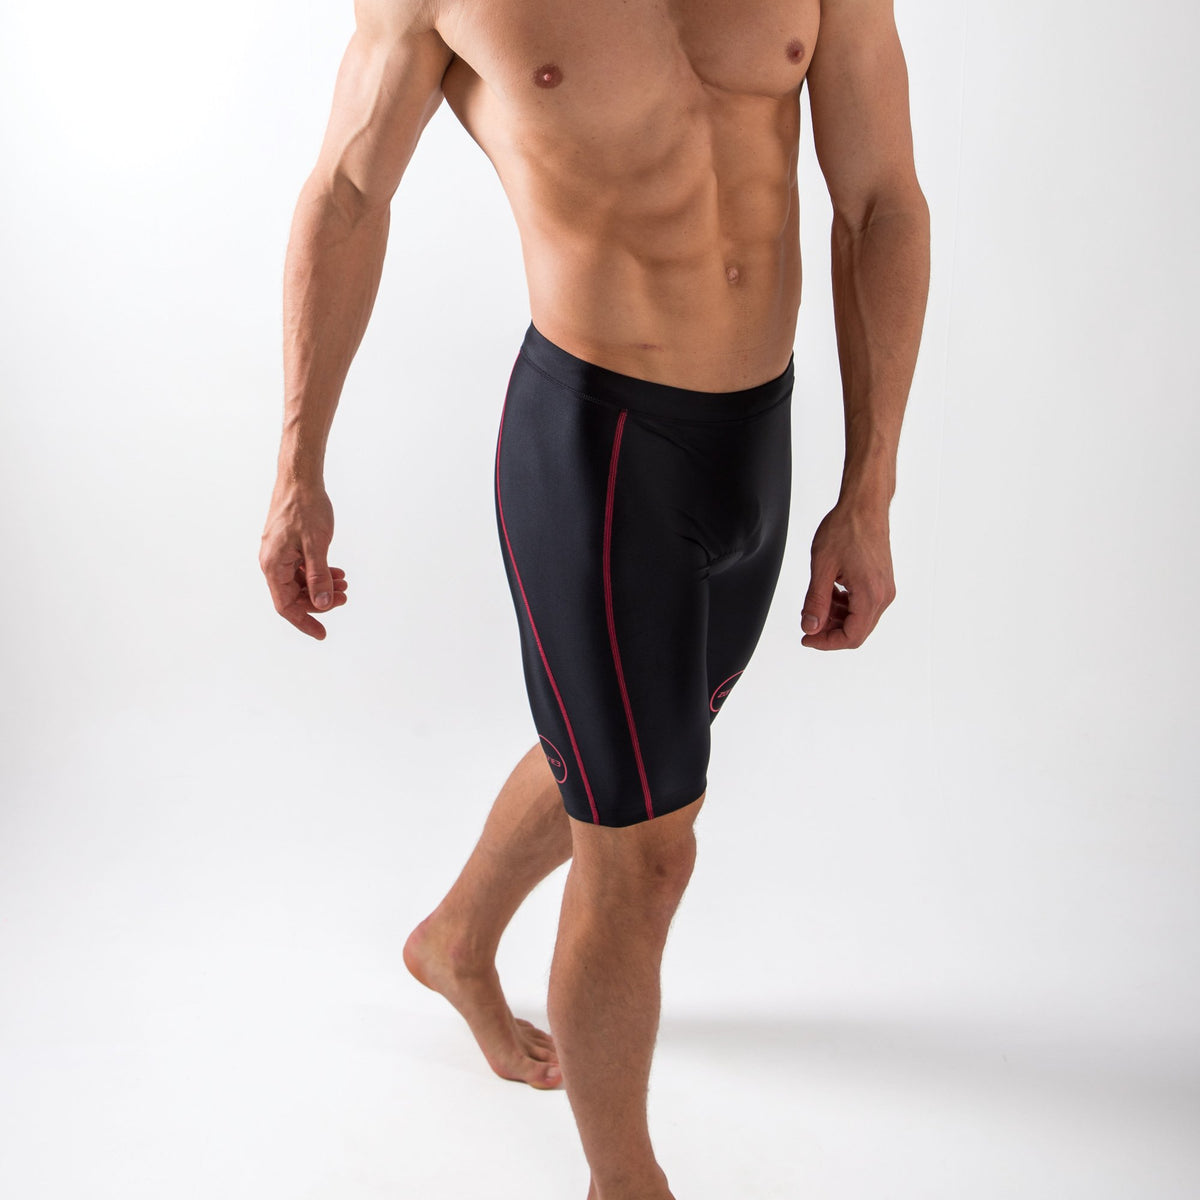 Men's Activate Tri Shorts pose